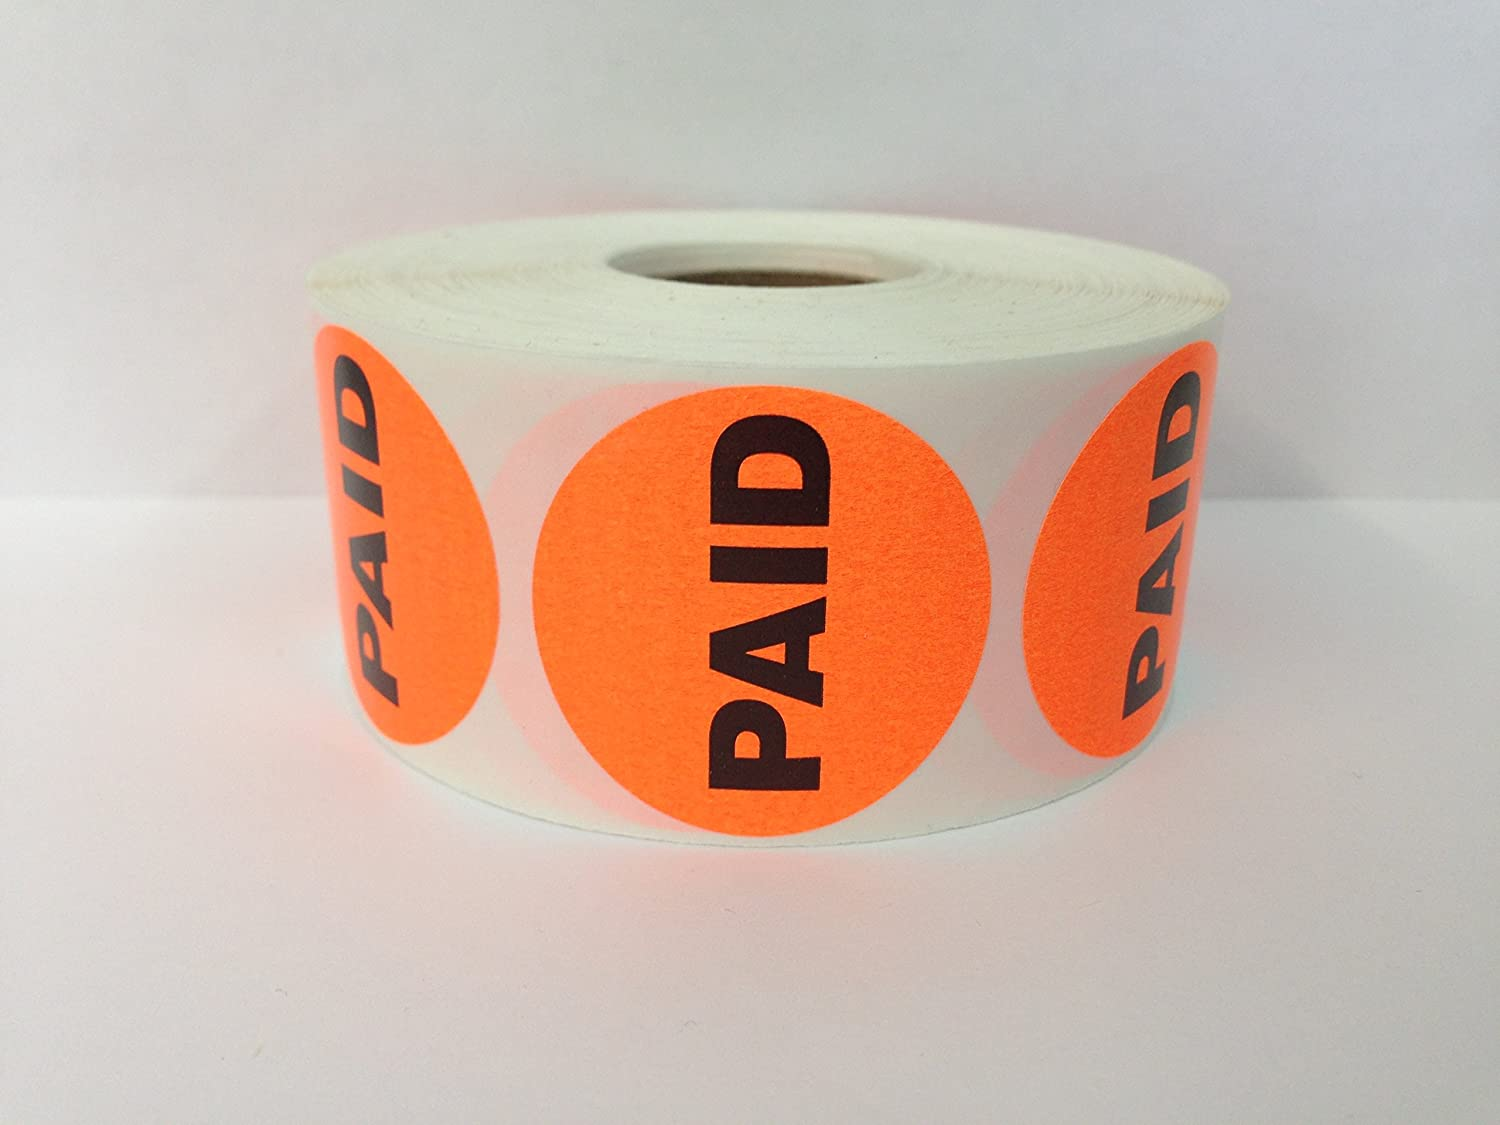 10, 000 Labels 1.5' Round Orange PAID Pricing Price Point Retail Stickers 10 Rolls 000 Labels 1.5 Round Orange PAID Pricing Price Point Retail Stickers 10 Rolls Labels and More